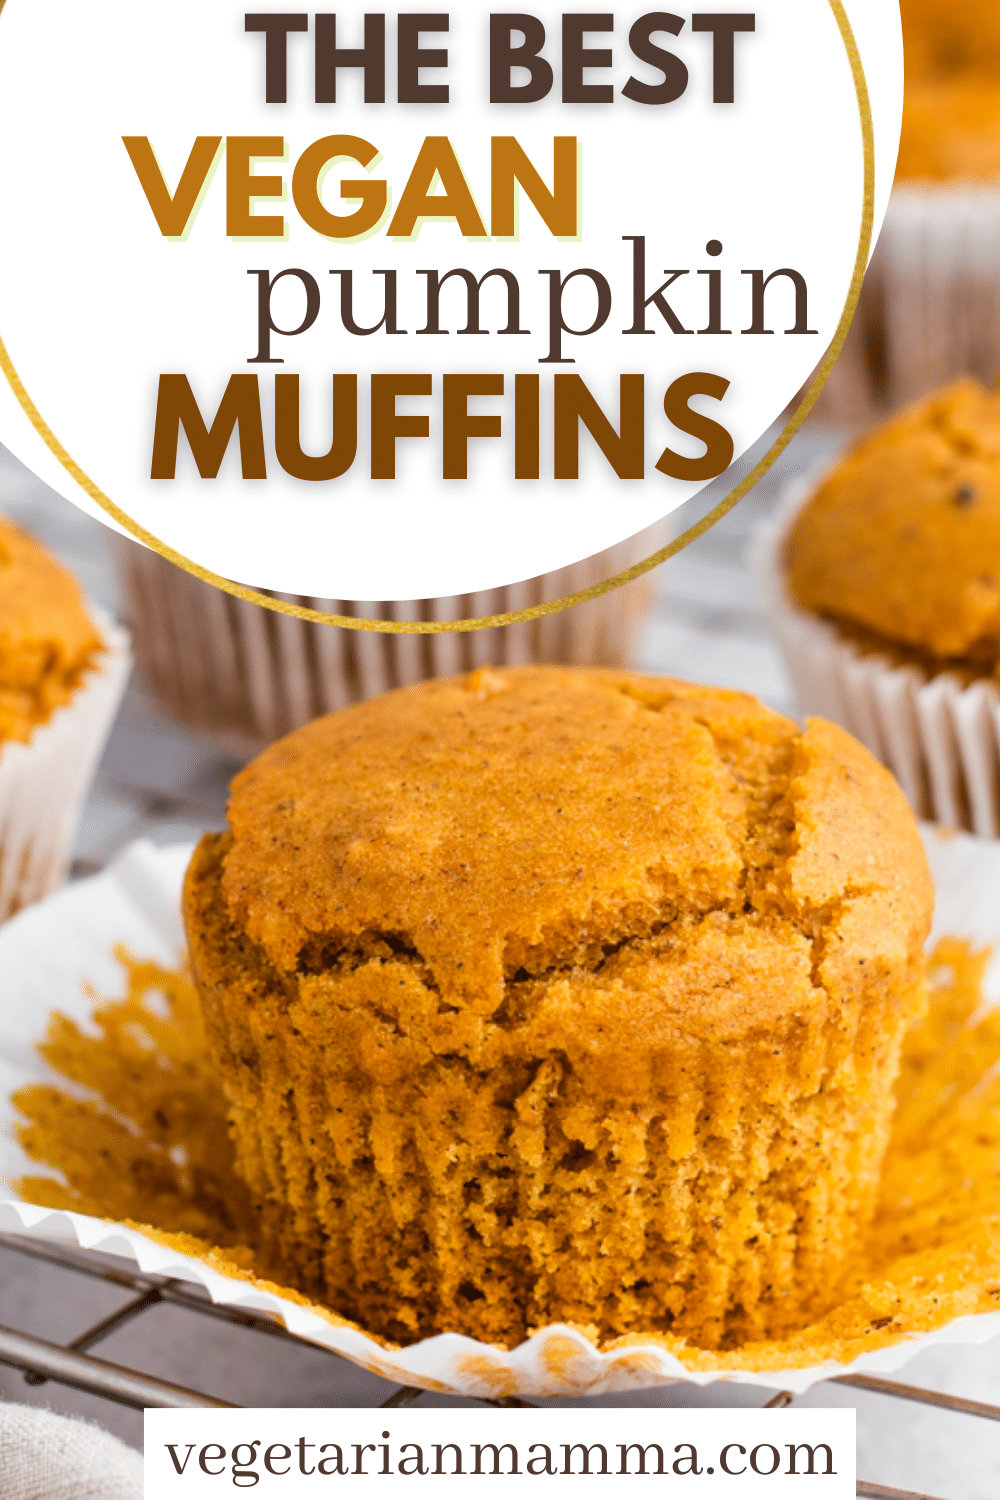 Vegan Pumpkin Muffins are the best fall breakfast! You'll be craving these easy-to-make sweet pumpkin spice muffins all year long. Perfect for meal prep.